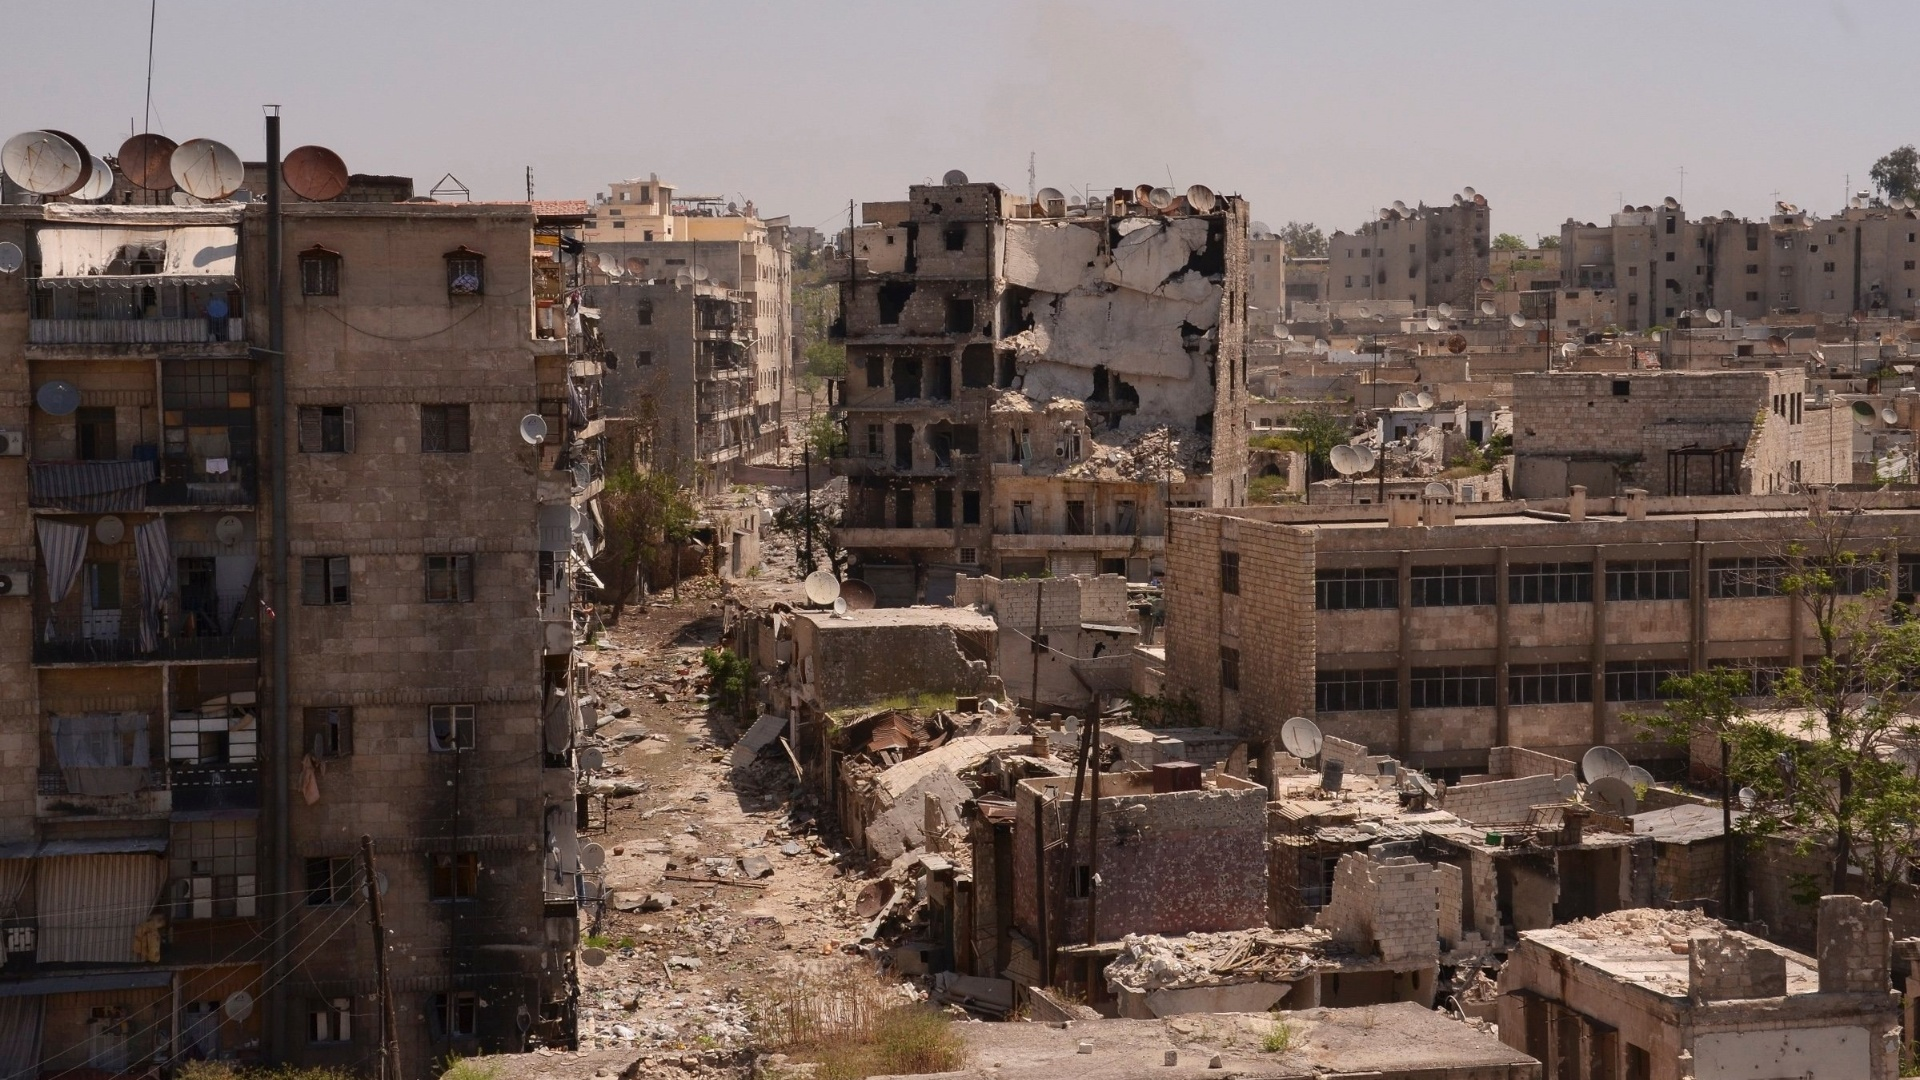 29.abr.2013 - Vista area mostra prdios destrudos em Aleppo, na Sria, nesta segunda-feira (29)